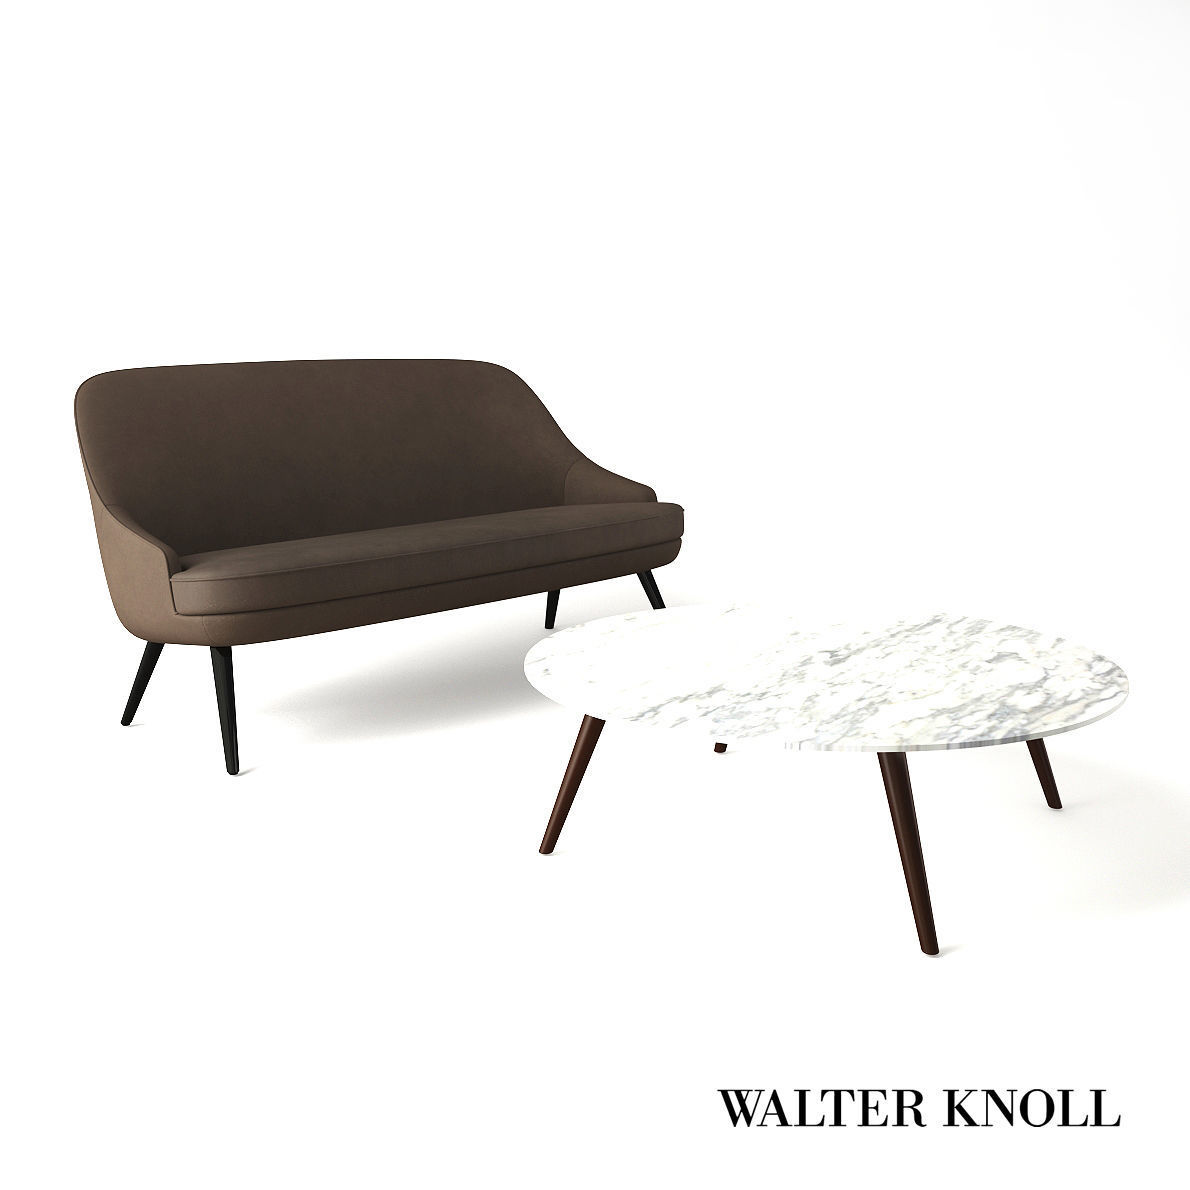 Walter Knoll Sofa Sofa And Coach Table From Walter Knoll Design By Wk Team 3d Model